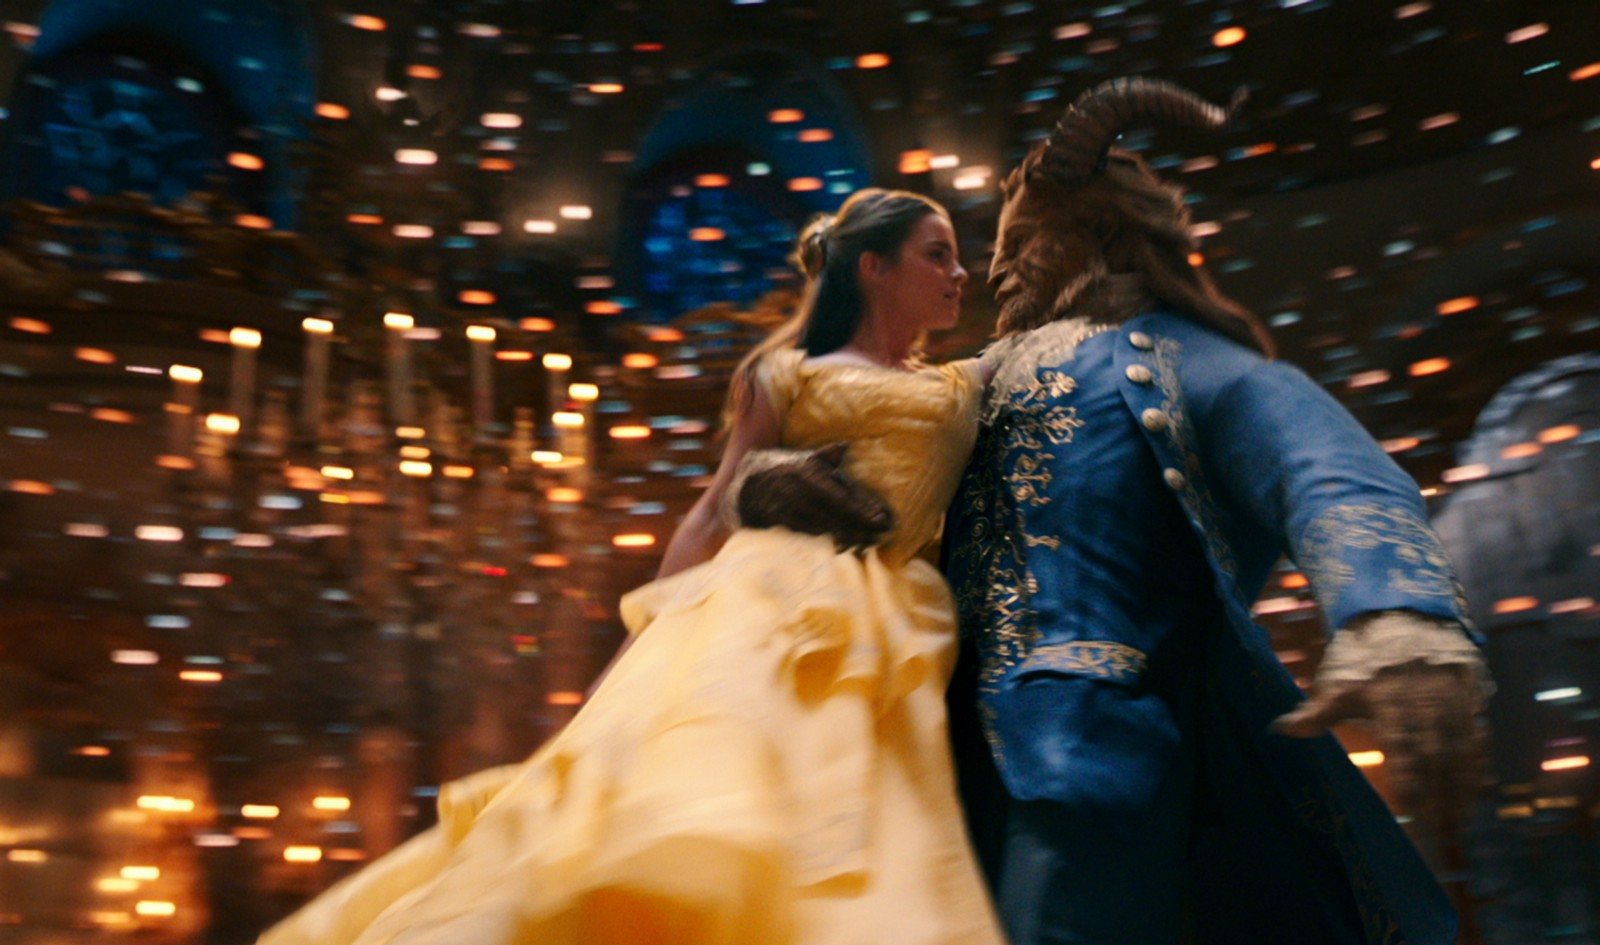 Disneys Beauty And The Beast Is A Stunning Tale As Old As Time